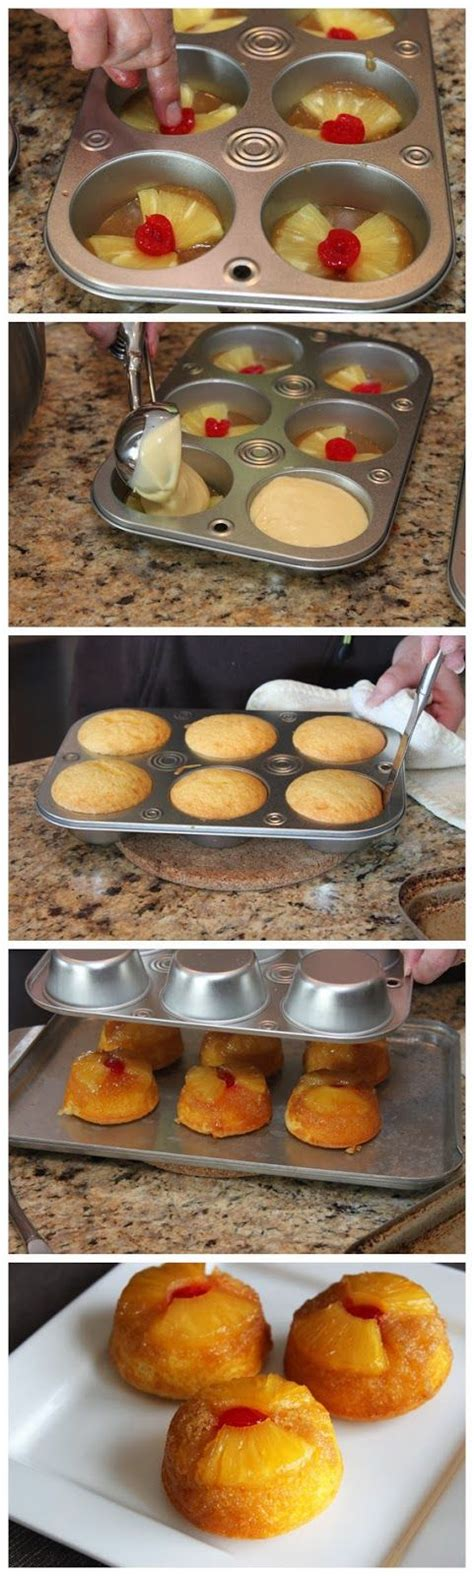 pineapple upside down cupcakes the host pinterest